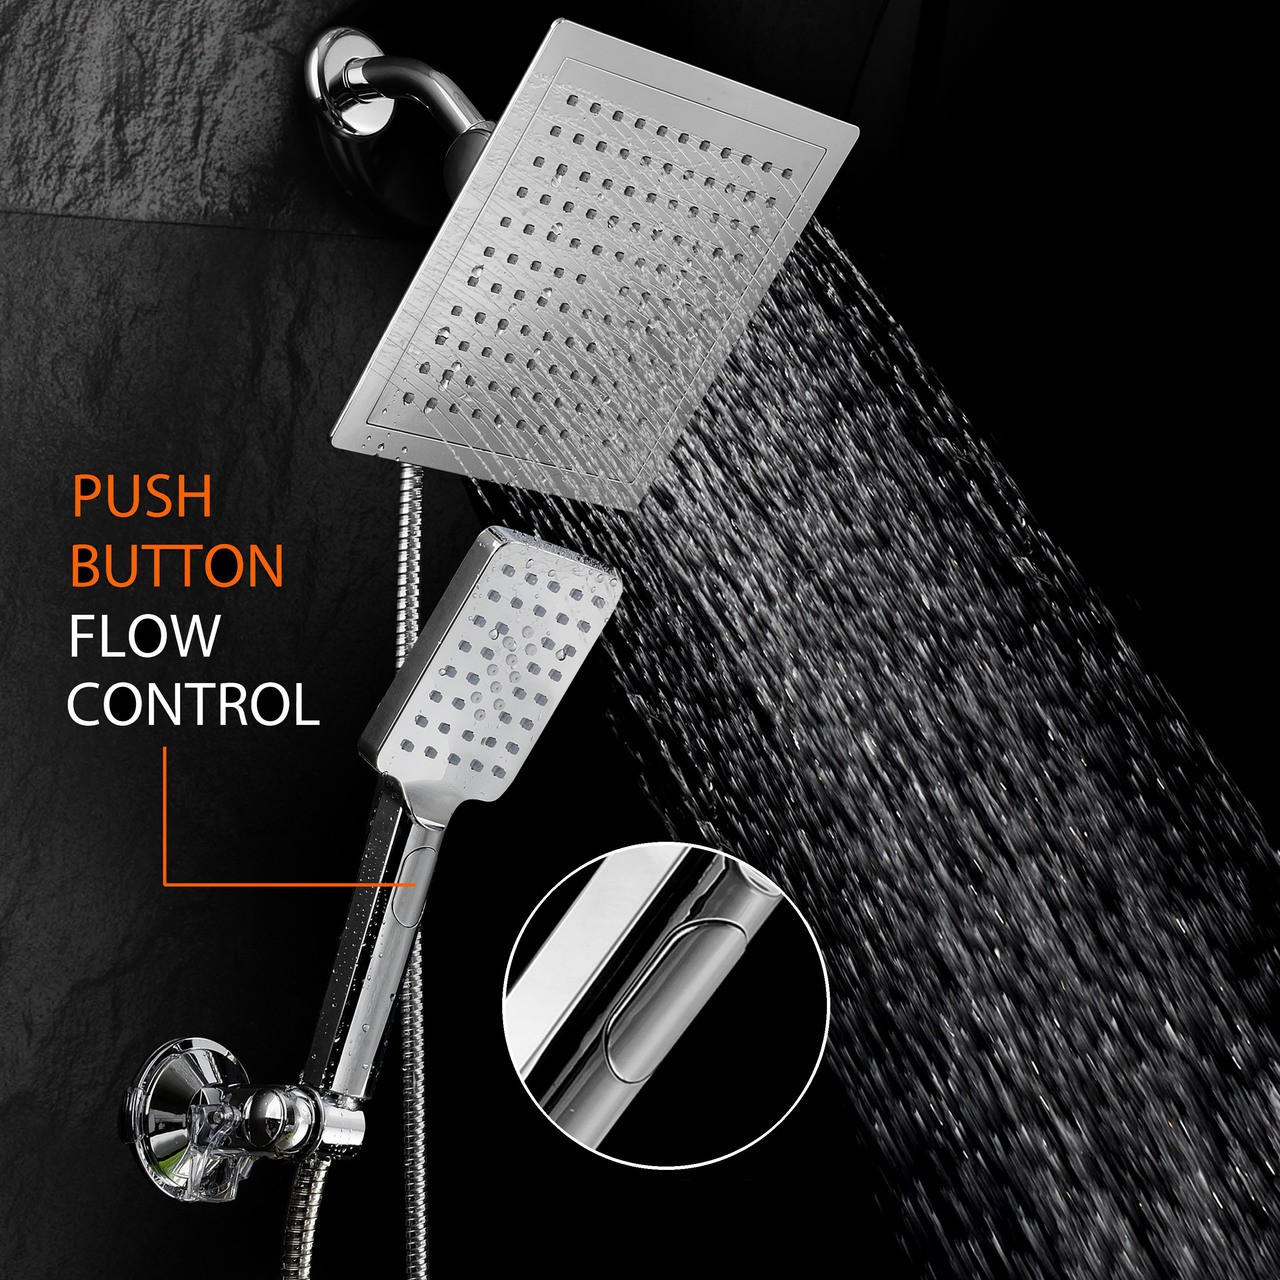 Dream Spa Ultra Luxury 9 Rainfall Shower Head Handheld Combo Convenient Push Button Flow Control Button For Easy One Handed Operation Switch Flow